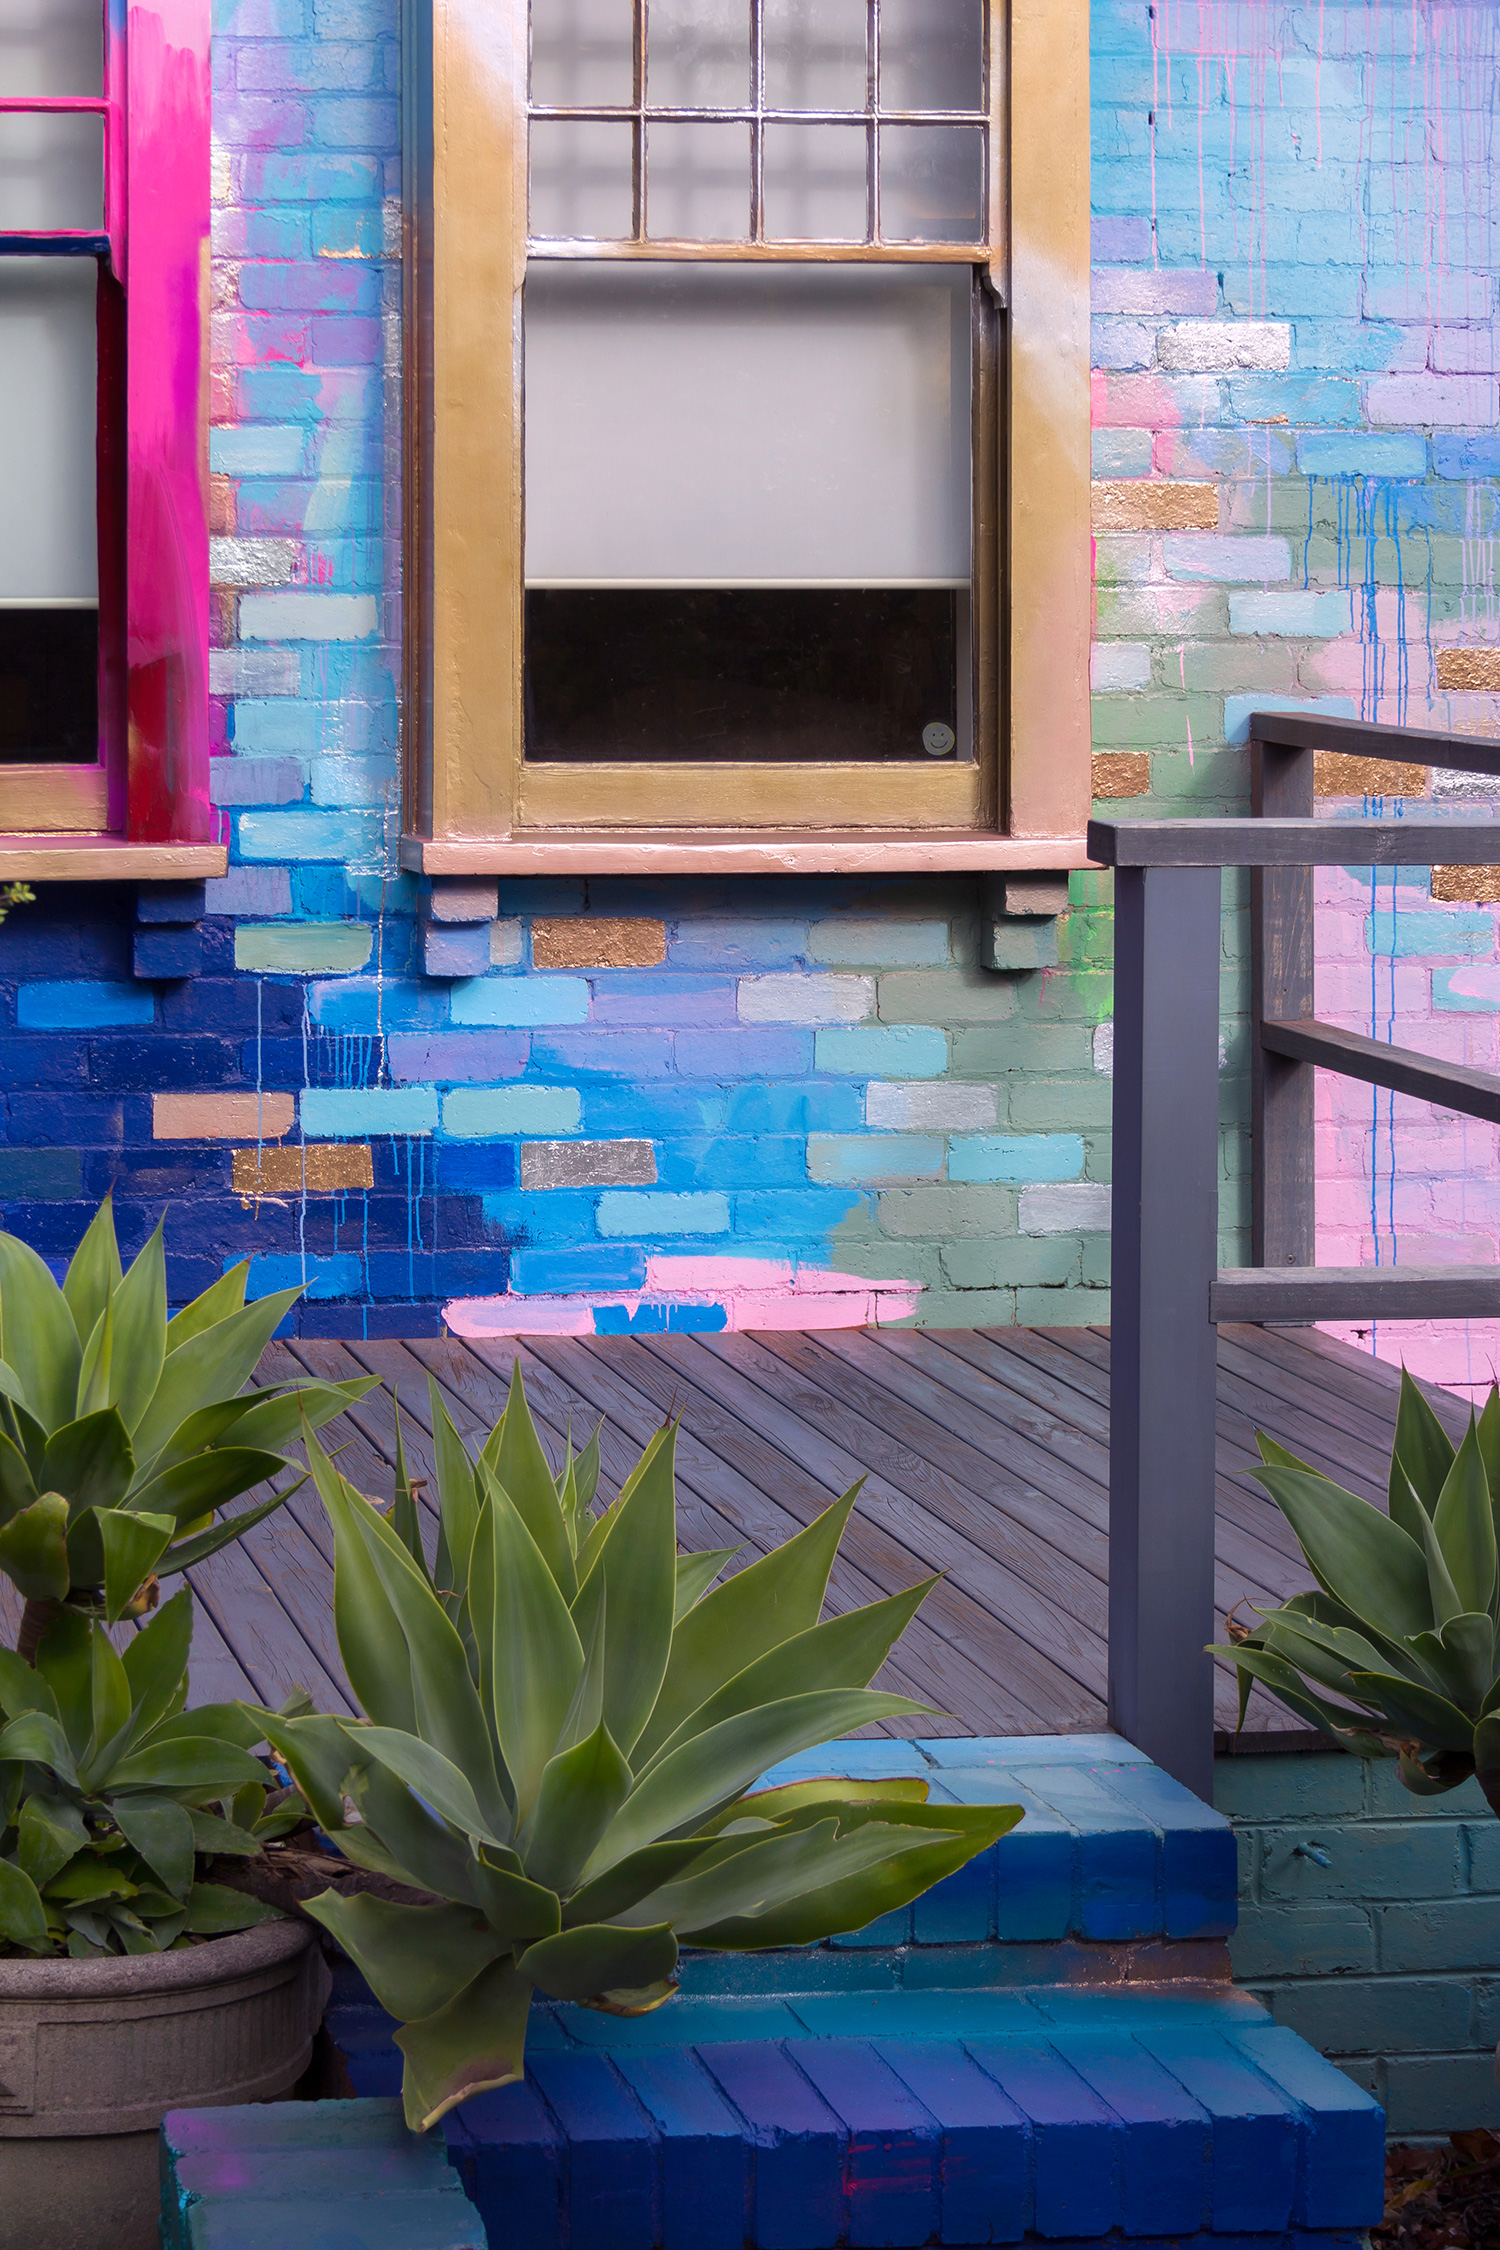 Vibrant abstract exterior mural in a bold color palette, the surrounding stairs have been painted to create a sense of entering the artwork.